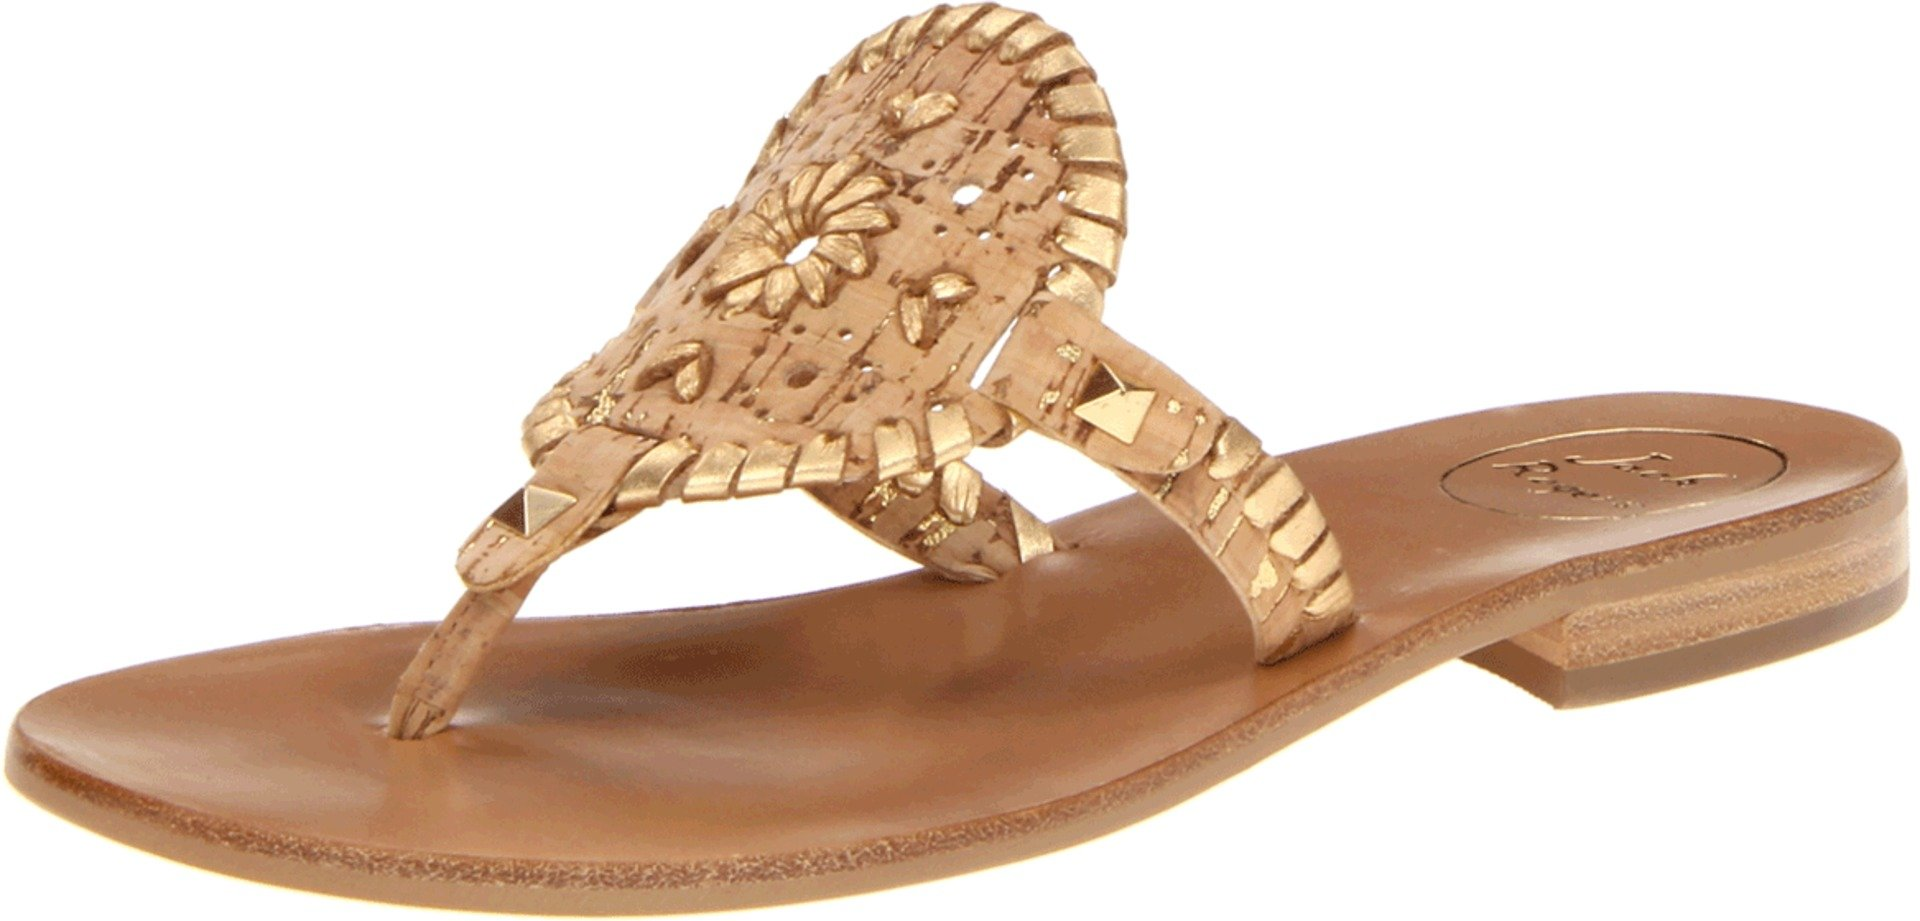 Jack Rogers Women's Georgica Sandal,Cork/Gold,5.5 M US by Jack Rogers